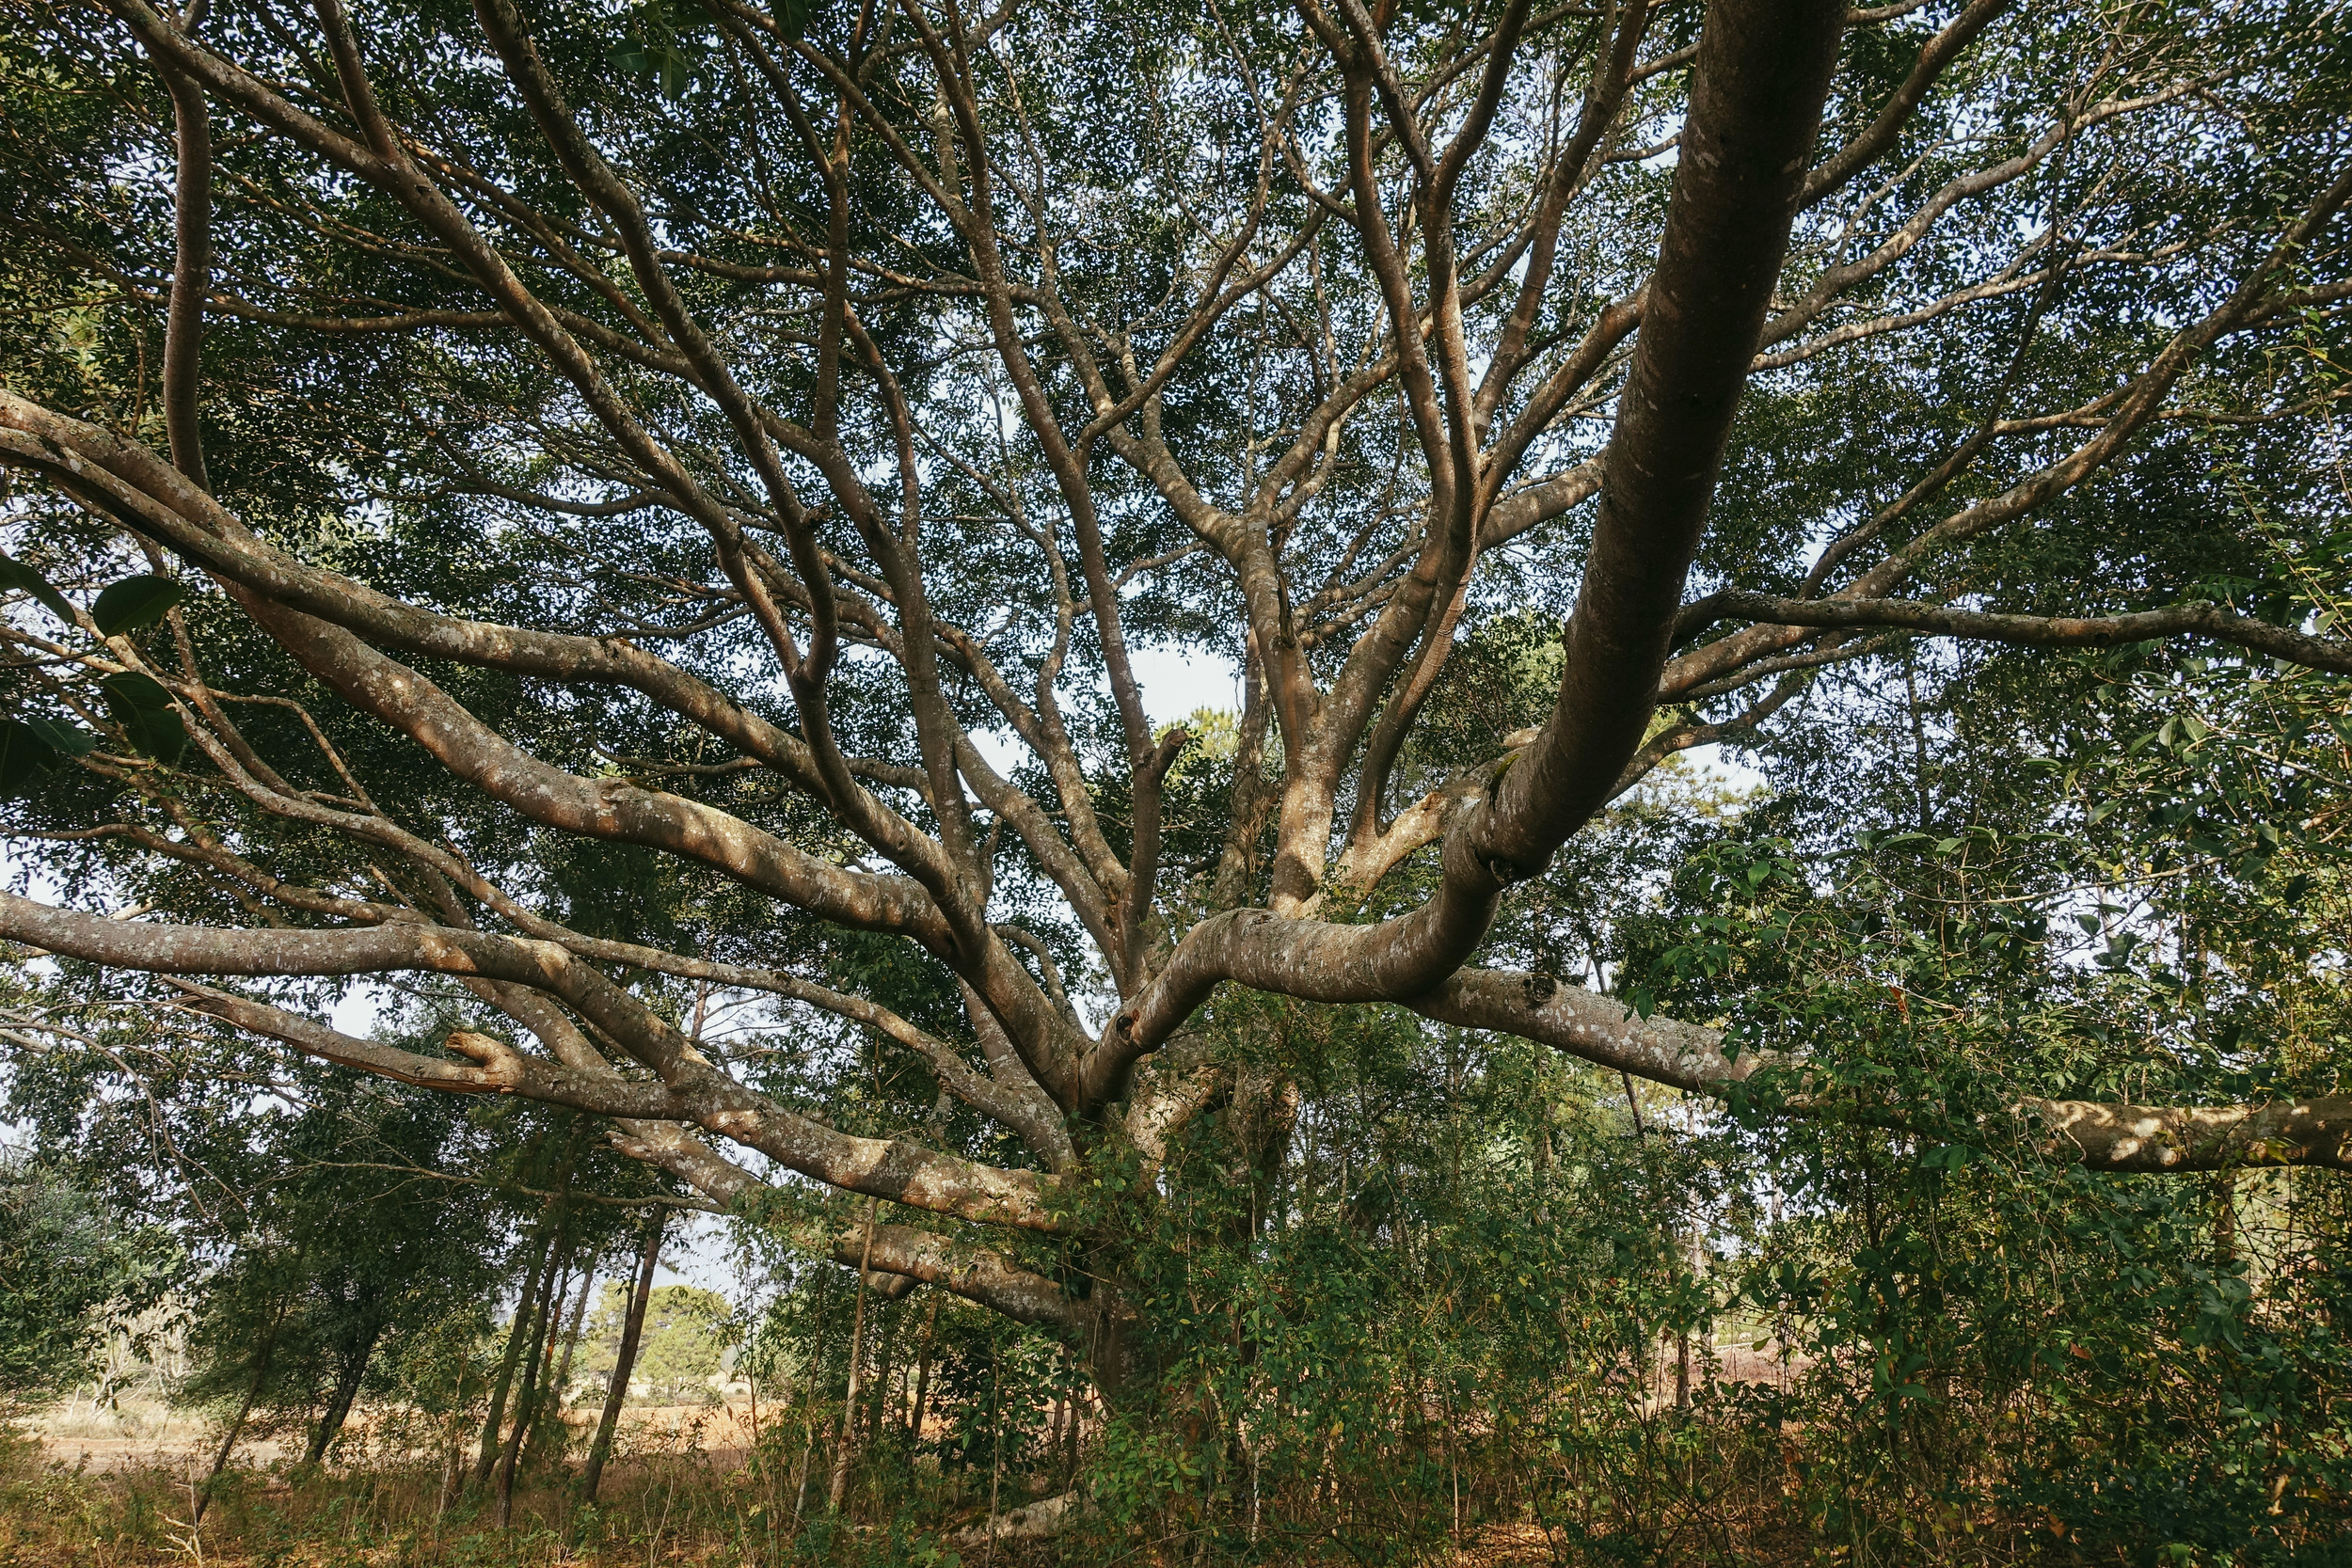 Giant banyan trees peppered the landscape